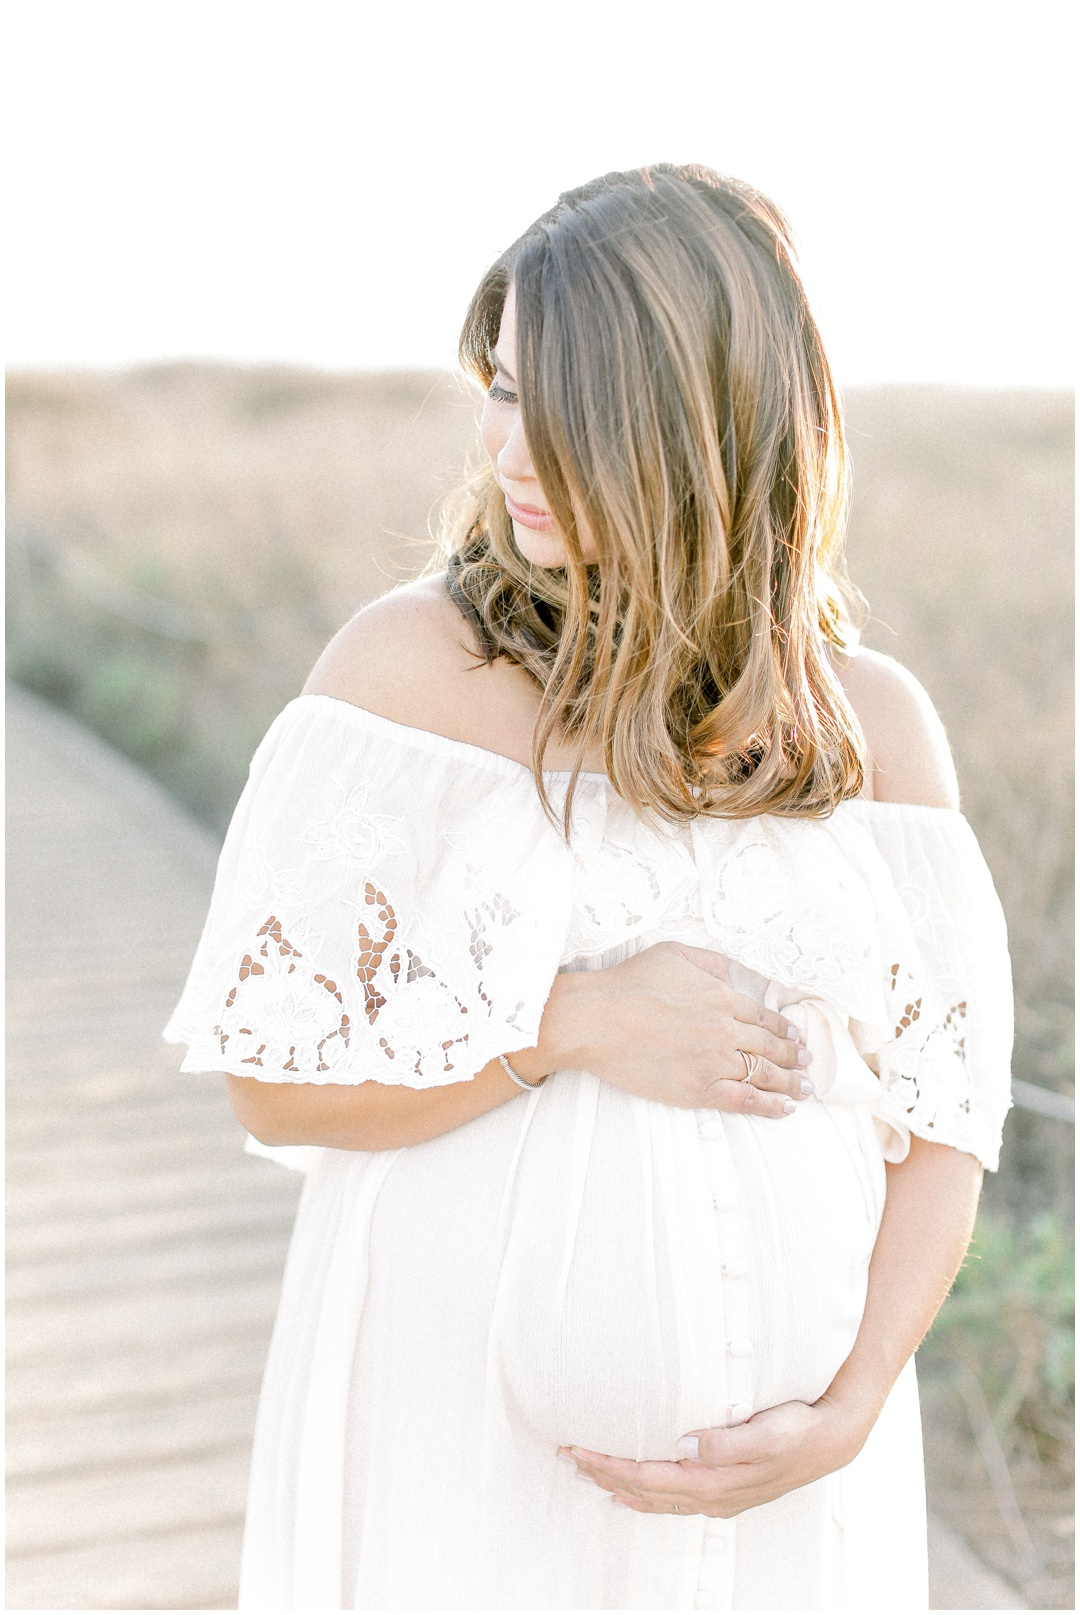 Orange_County_Maternity_Photographer_Newport_Beach_Family_Photographer_Newport_Beach_Newborn_Photographer_Orange_County_Family_Photographer_Cori_Kleckner_Photography_Huntington_Beach_Photographer_Nicole_Gire_Brandon_Gire__2549.jpg